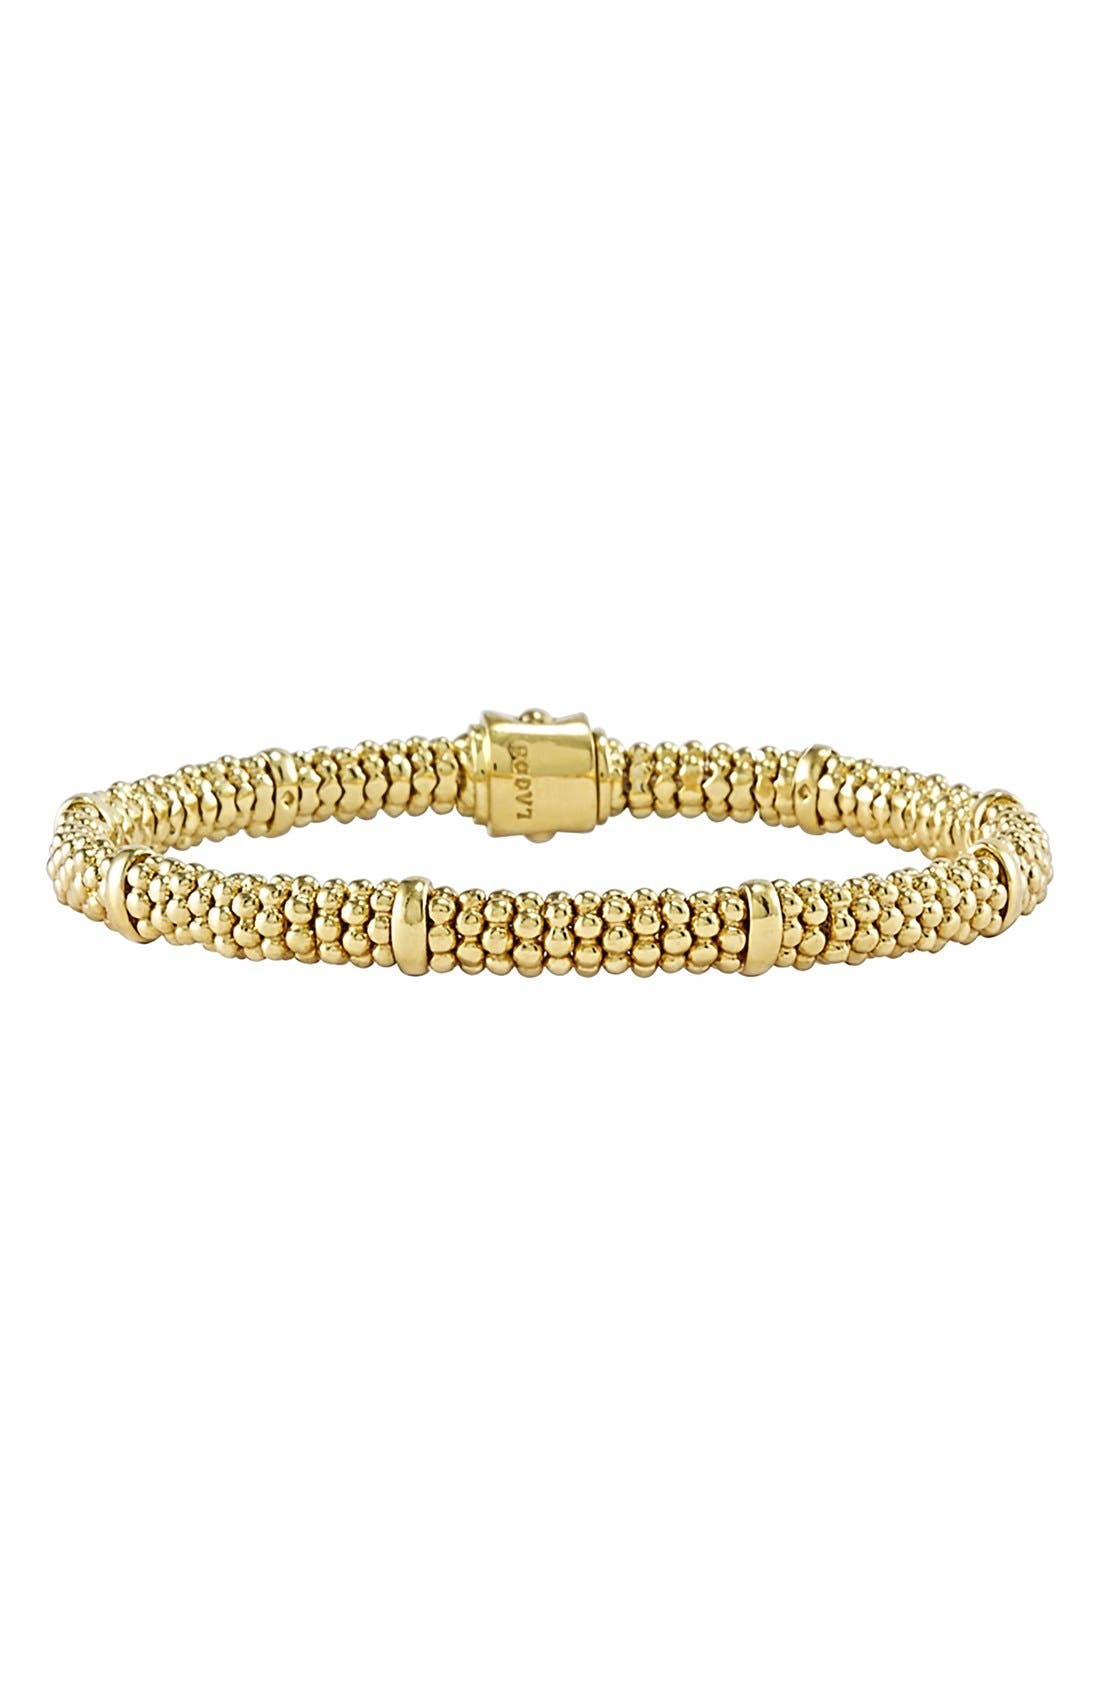 Caviar Rope Bracelet,                         Main,                         color, Gold